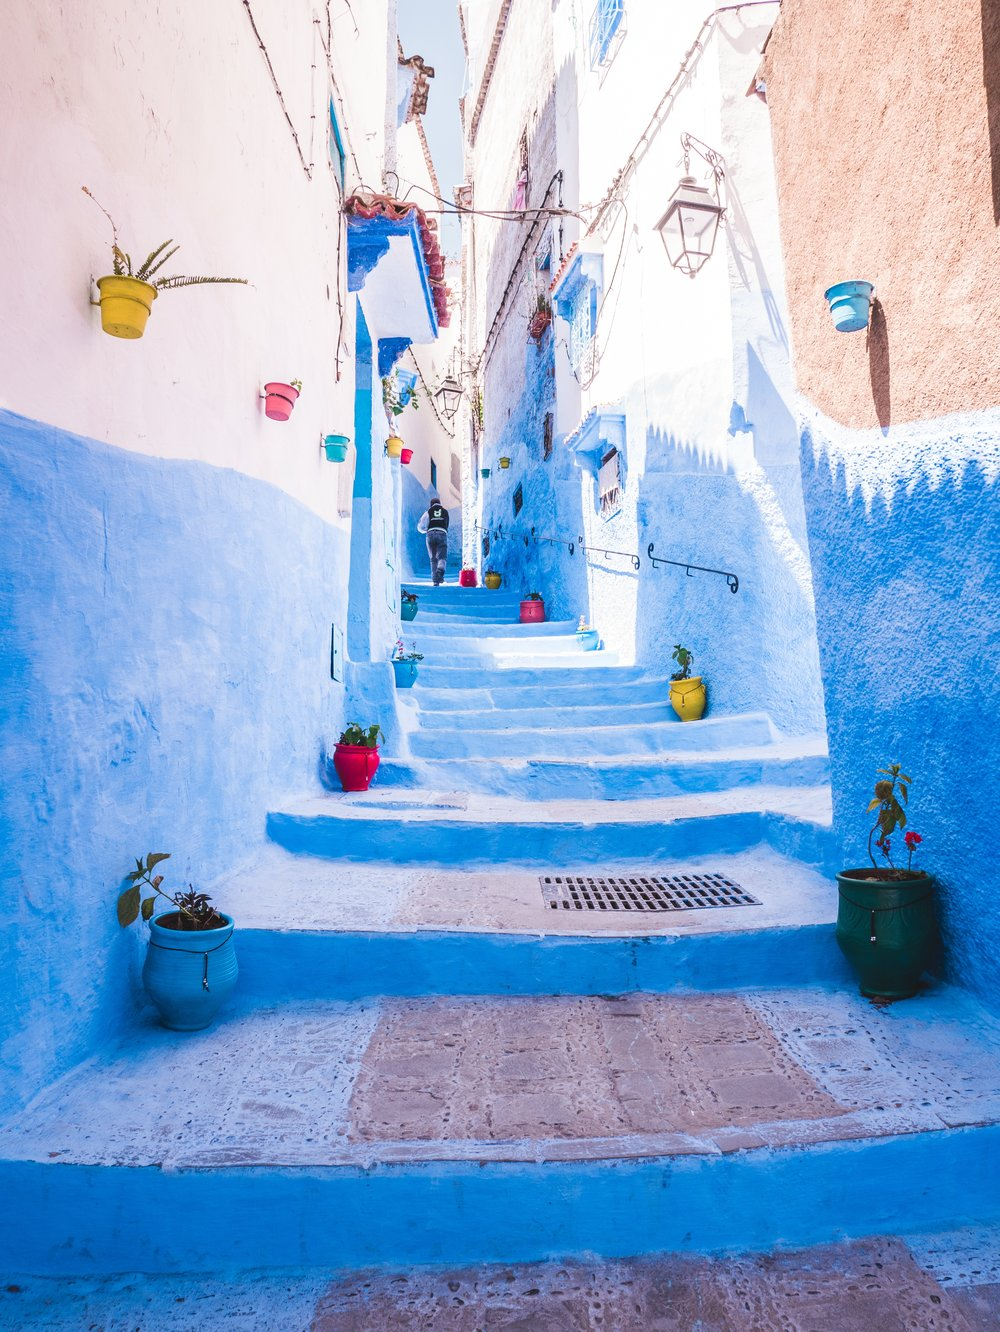 Chefchaouen - If blue is your theme.